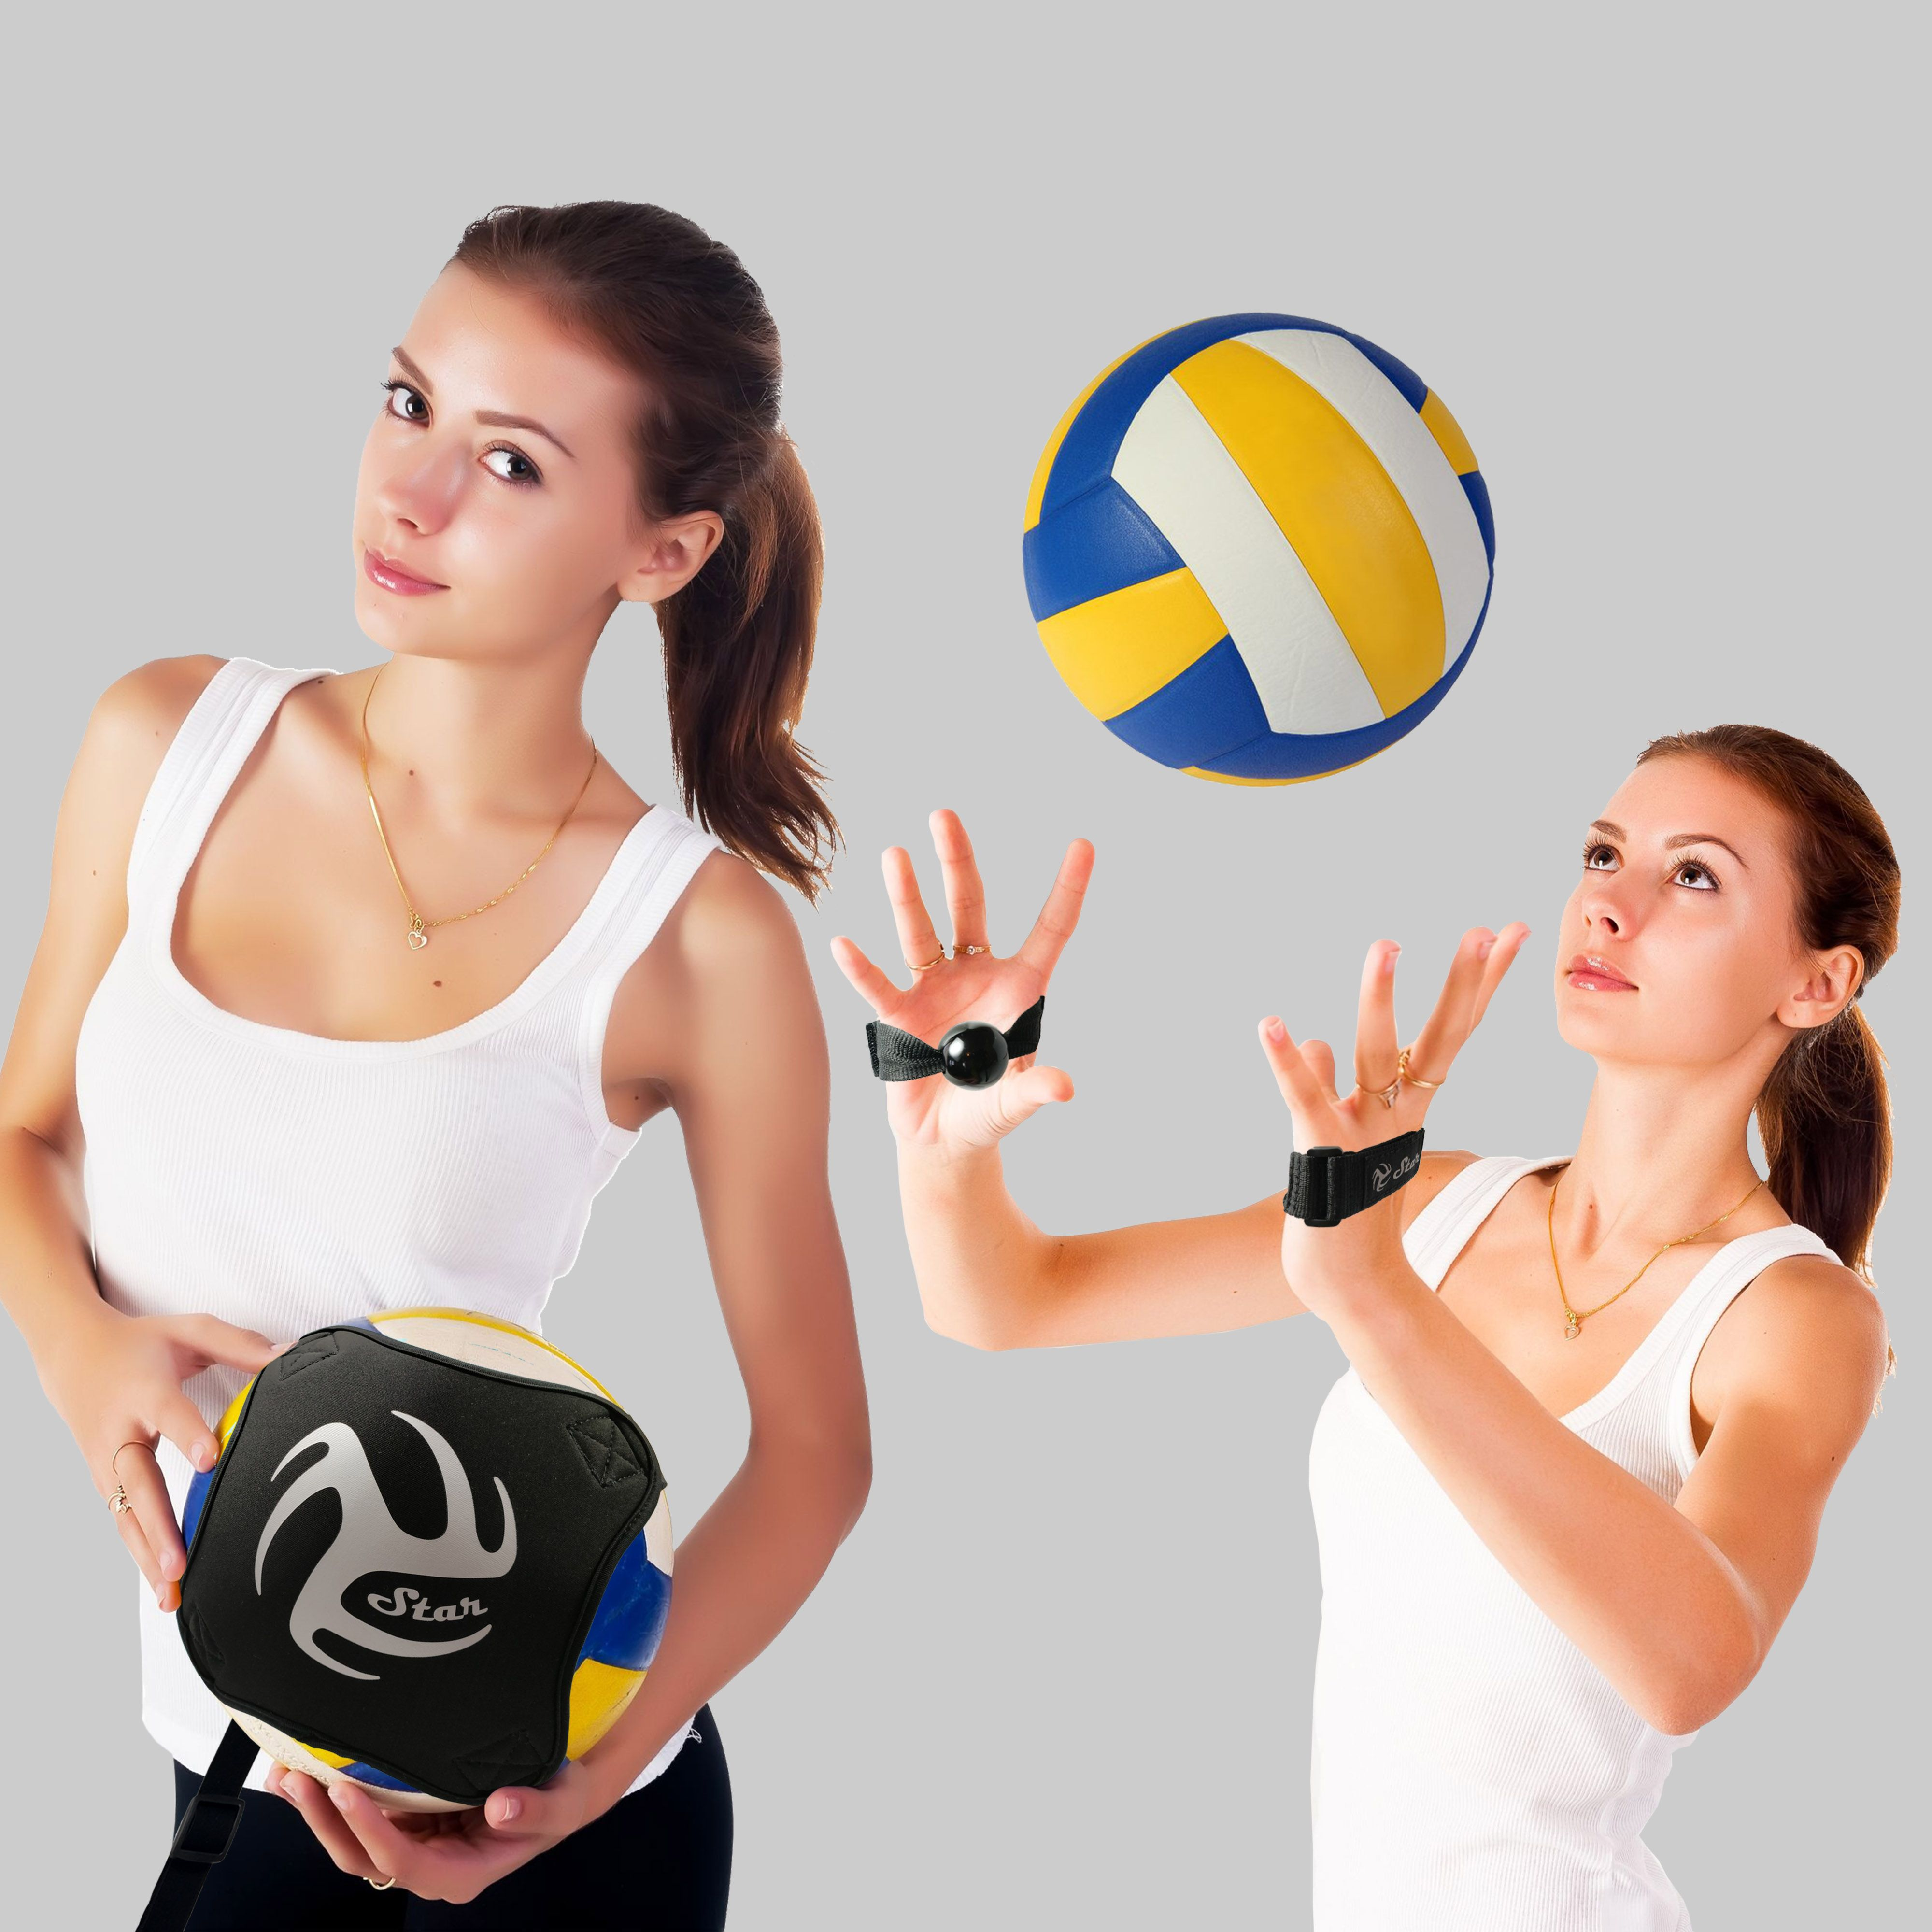 Volleyball Training Equipment 1 Ball Rebounder For Solo Practice Your Serve And Spike 2 Volleyball Training Equipment Volleyball Training Training Equipment